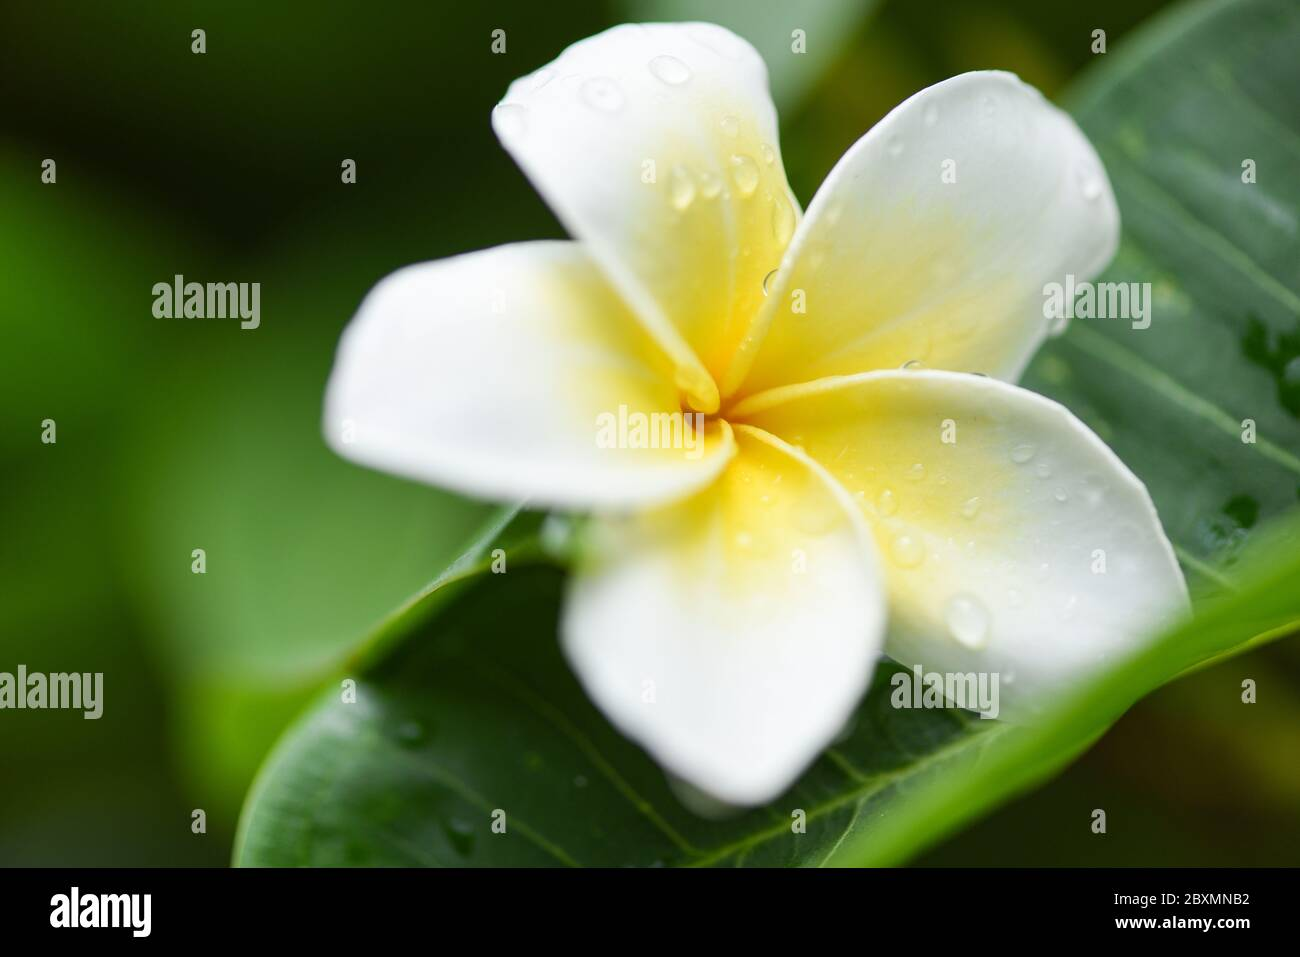 Plumeria Flowers With Drop Water On Green Leaf Other Names Frangipani White Plumeria Temple Tree Graveyard Tree Stock Photo Alamy,What Color To Paint Exposed Basement Ceiling